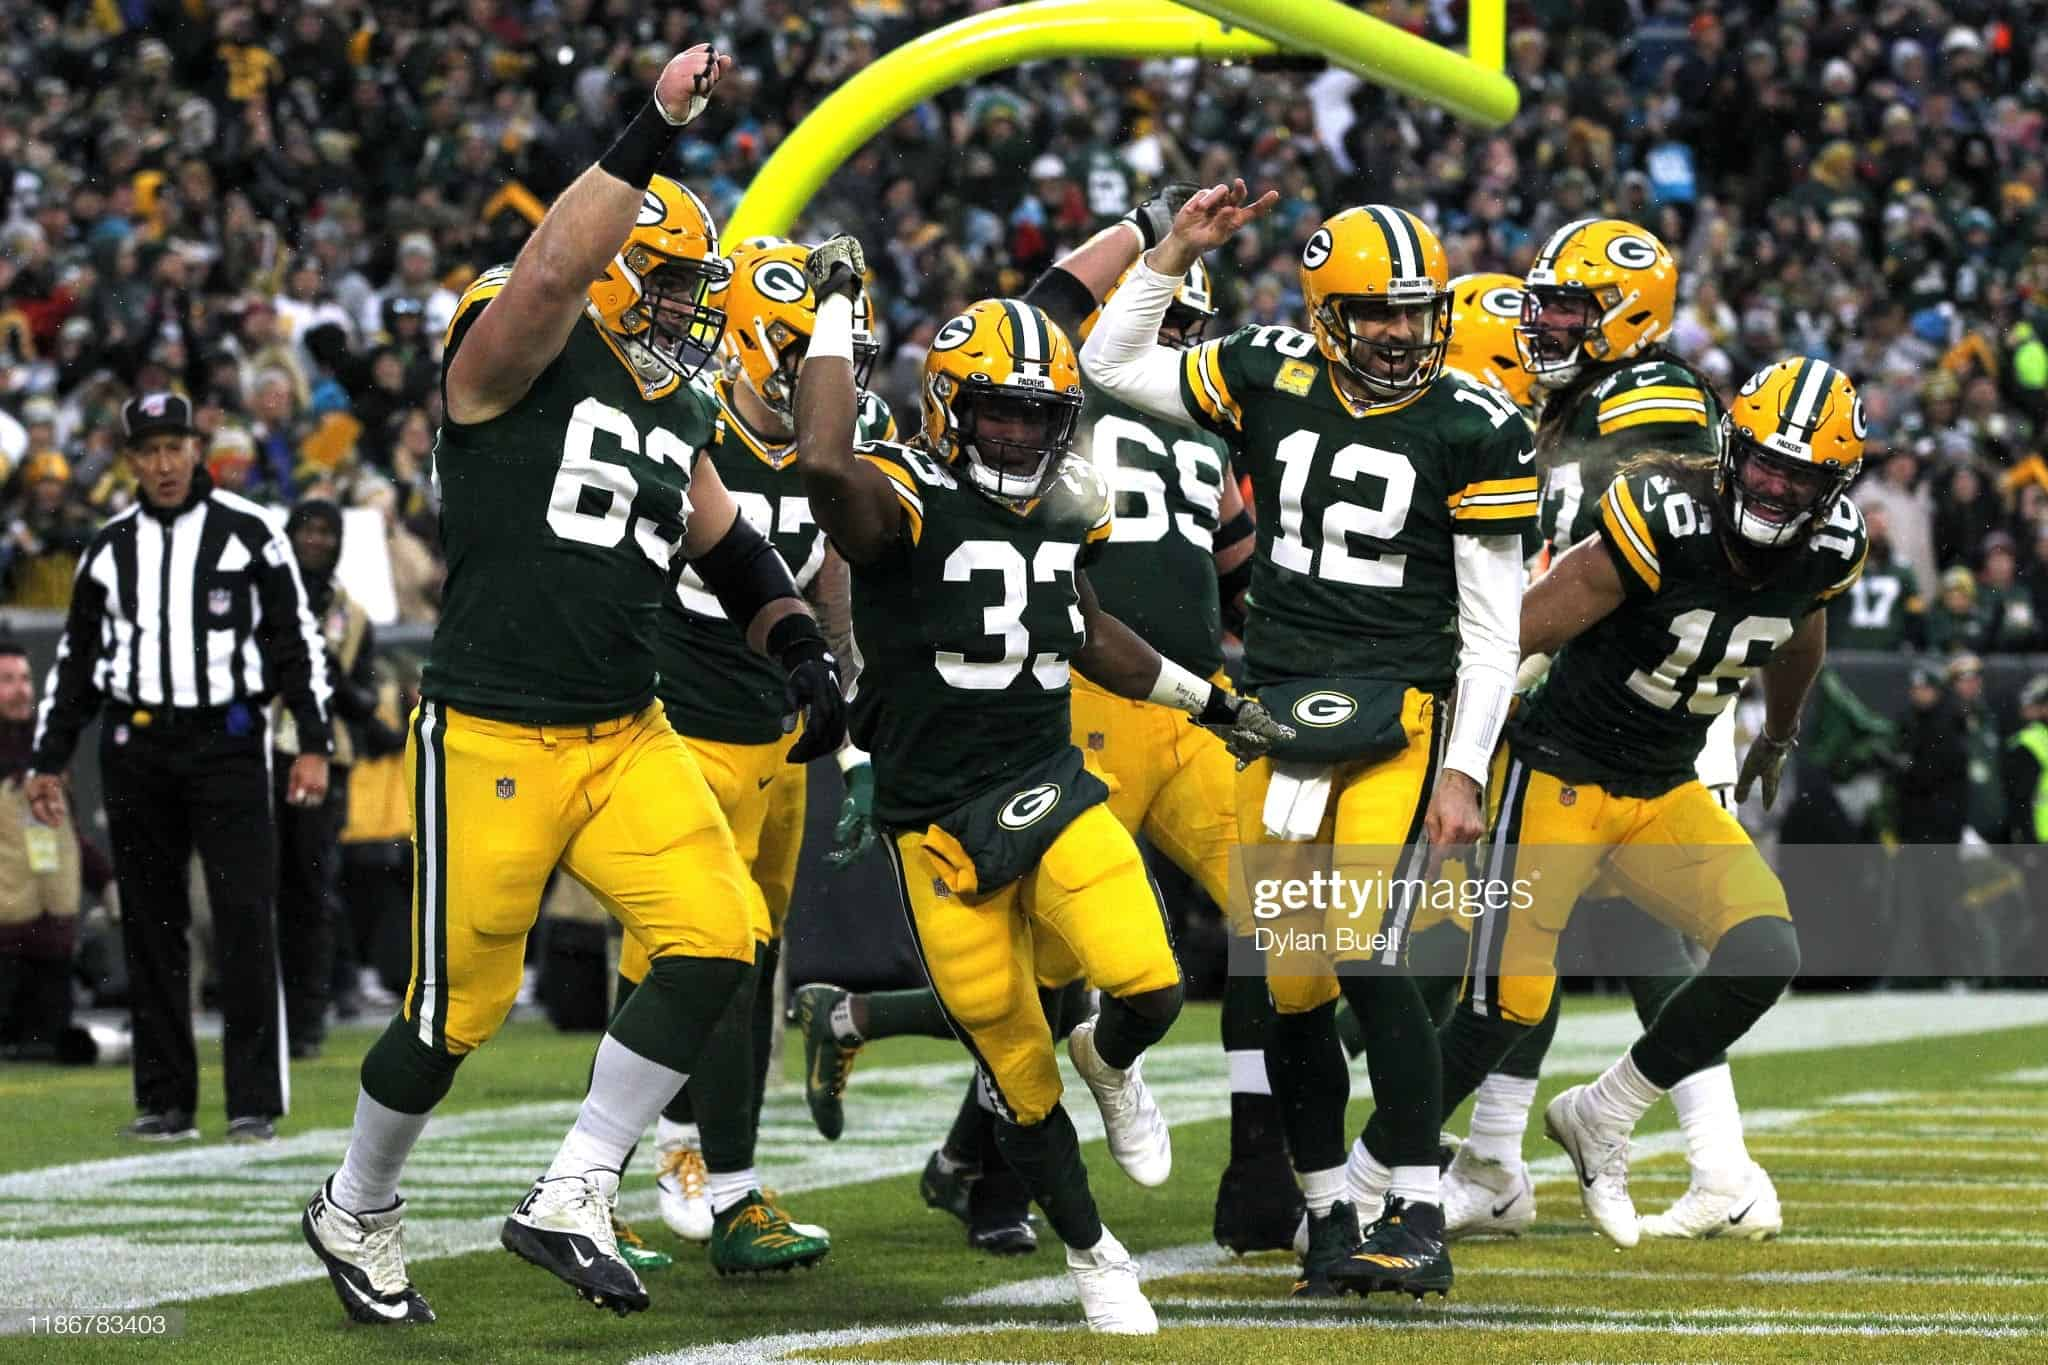 2021 NFL Predictions: Packers